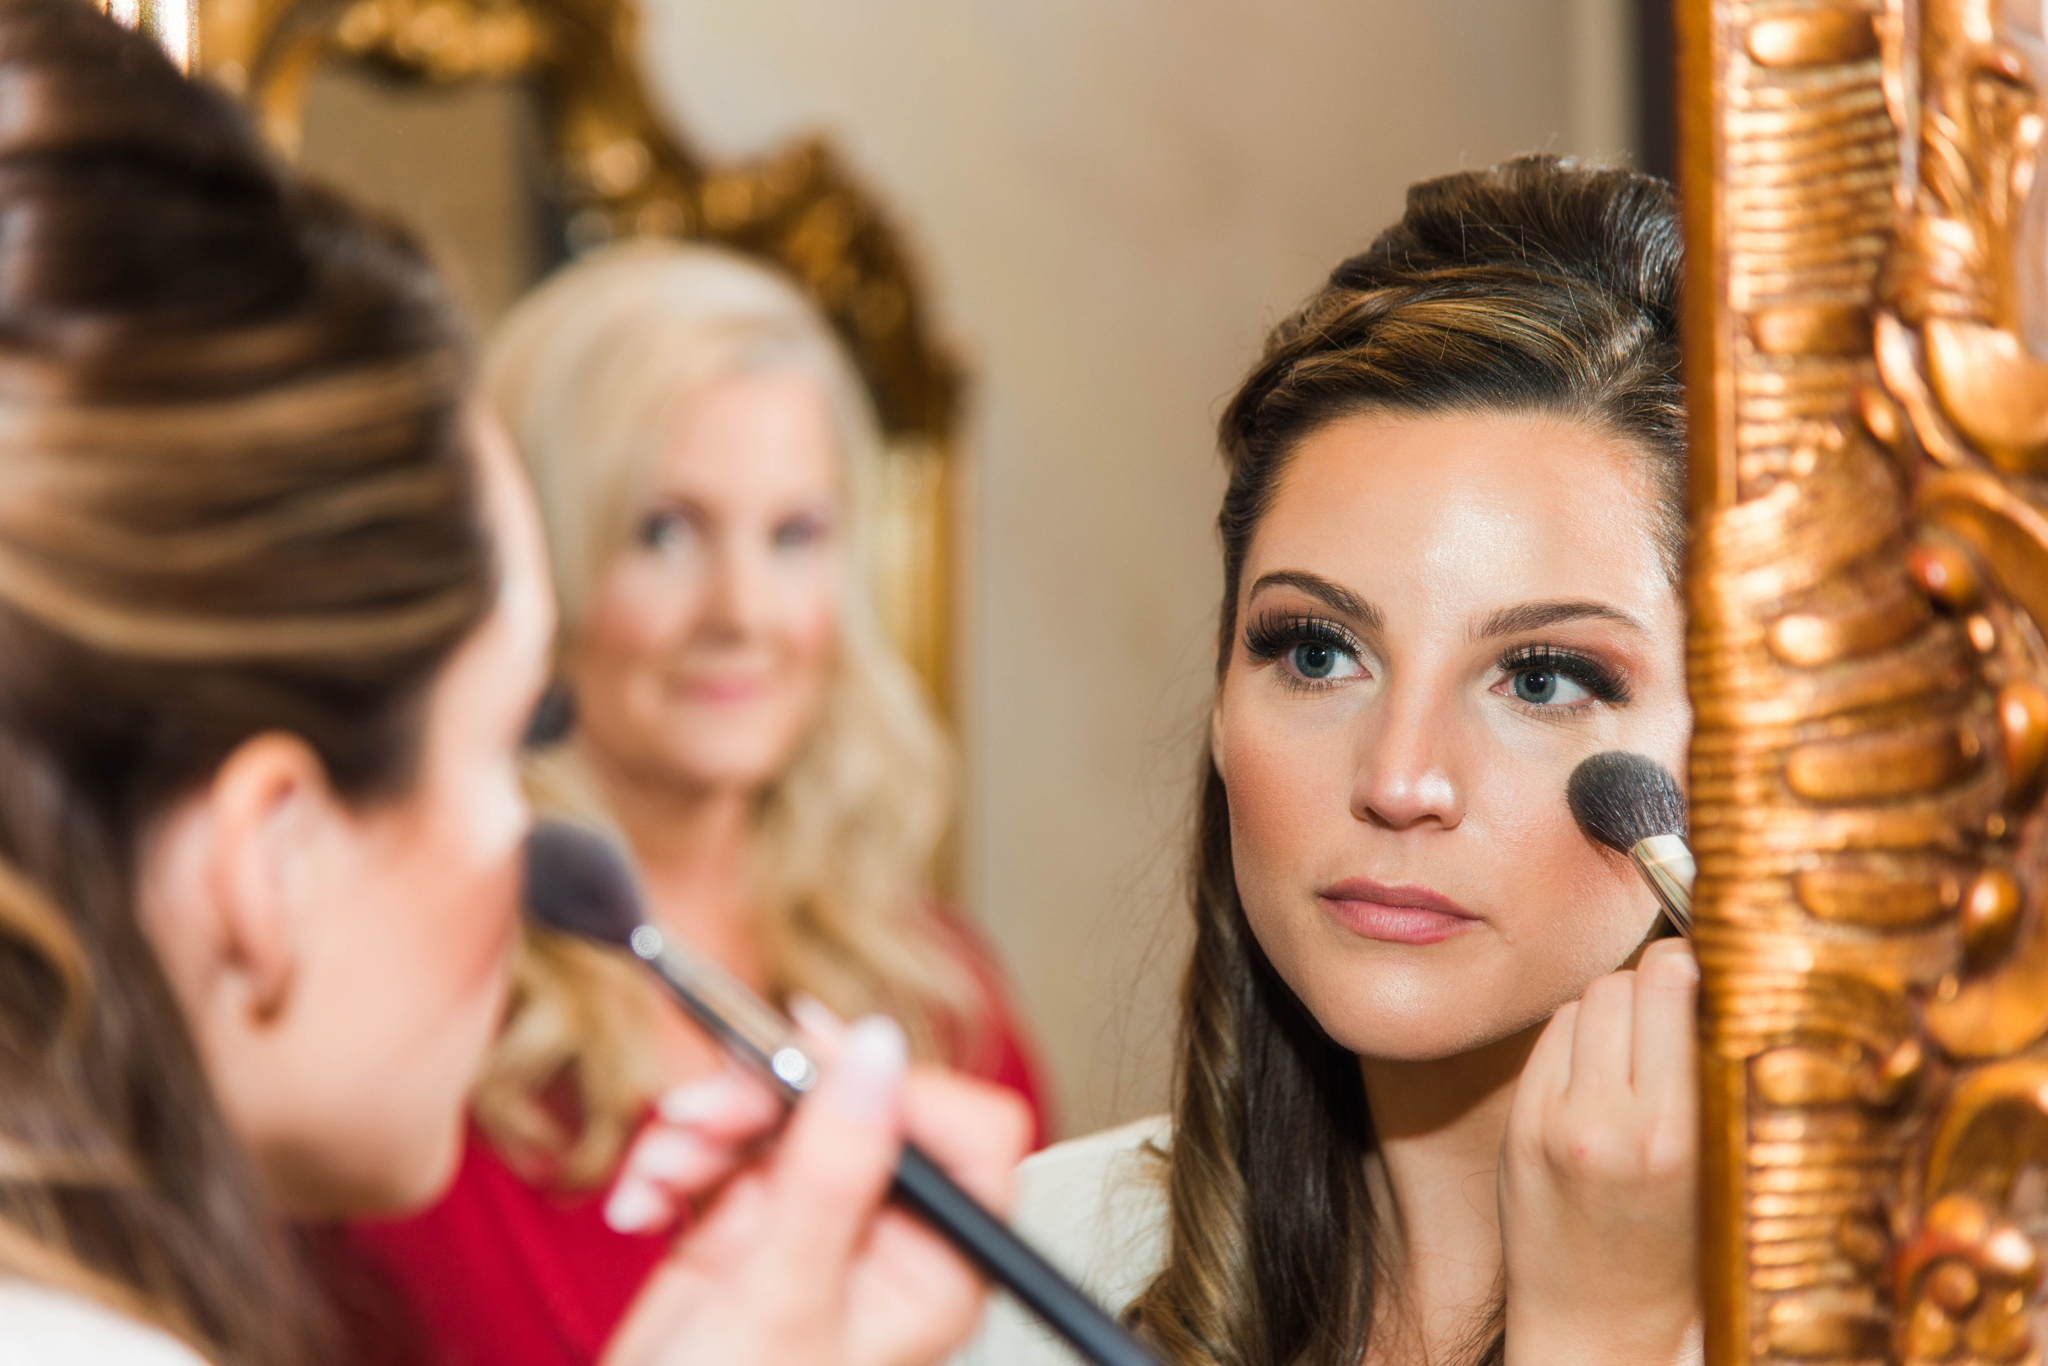 Bride putting on make up in the mirror while her mother is smiling at her - Honolulu Oahu Hawaii Wedding Photographer